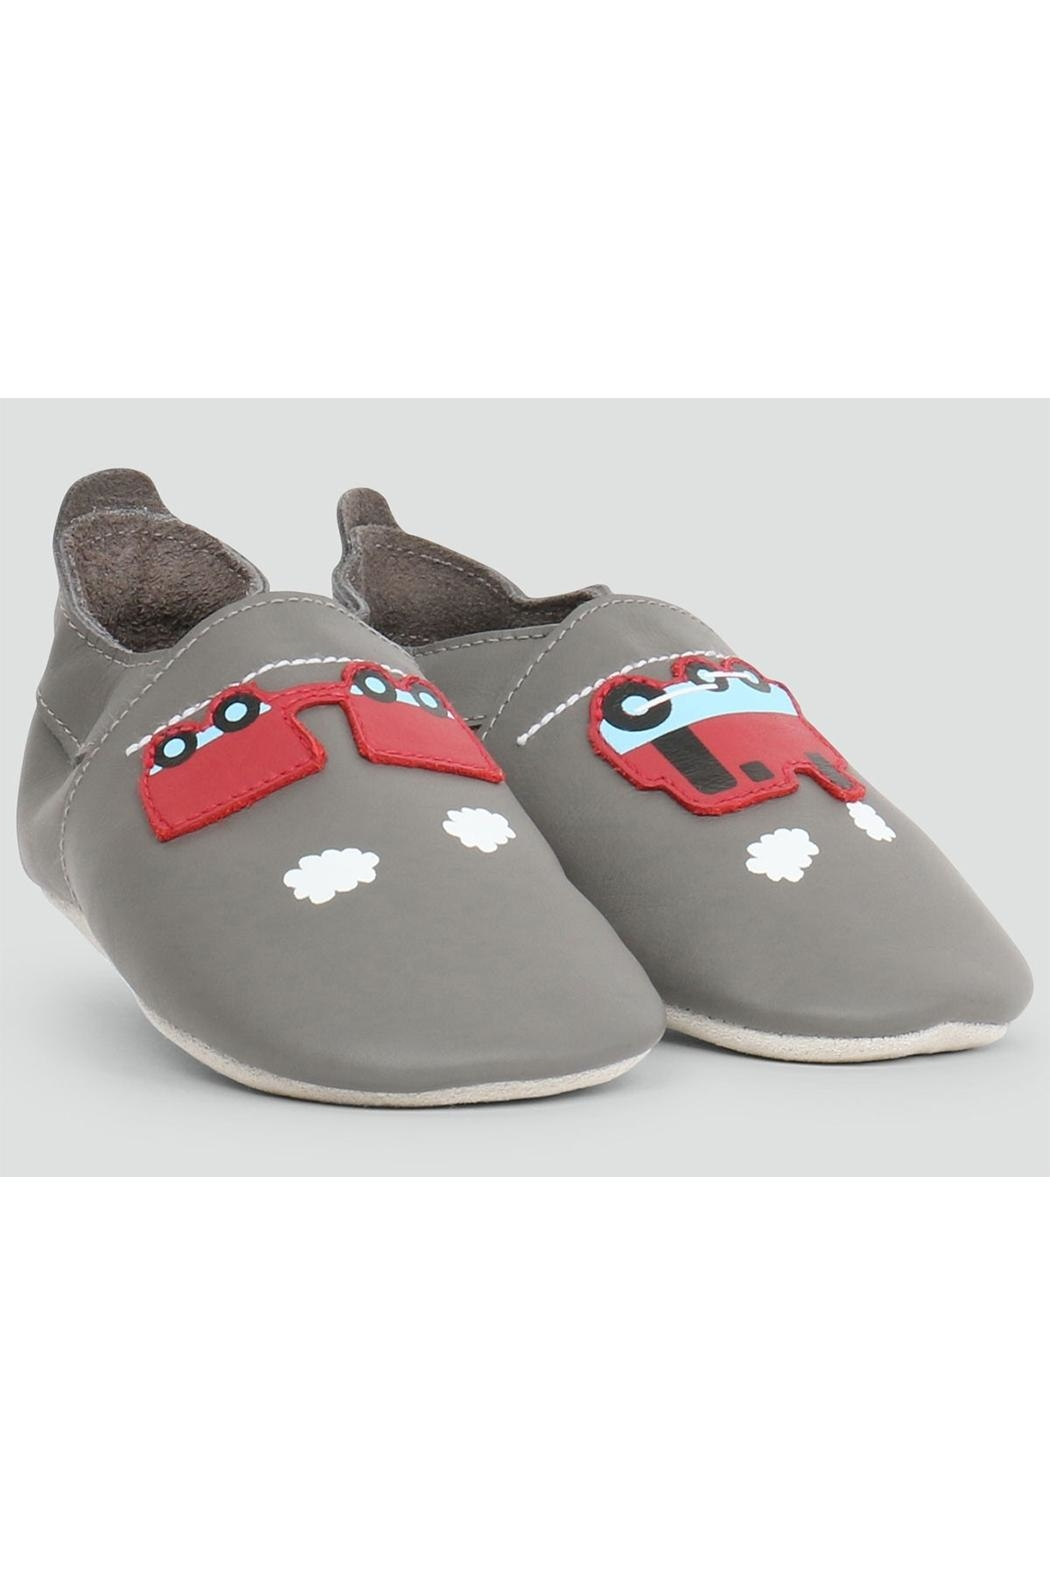 Bobux Train-Carriage Soft-Sole Slippers - Main Image